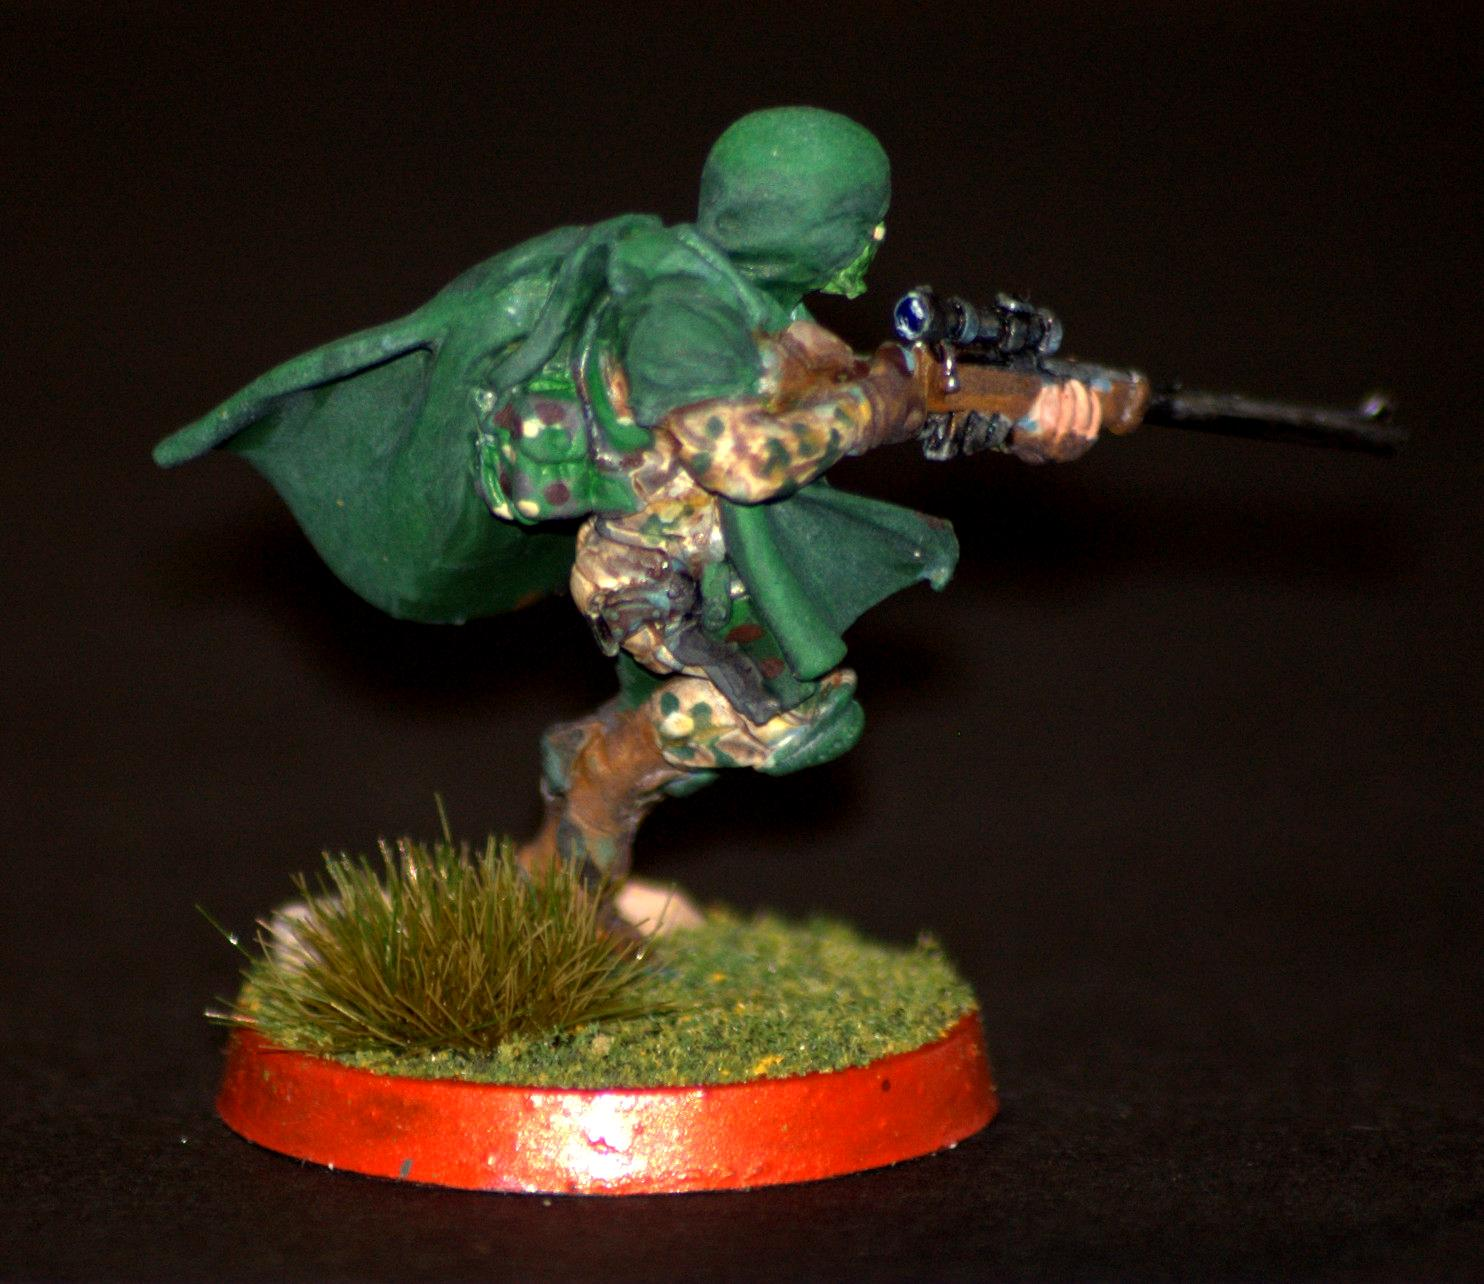 Ariadna, Infinity, Light Infantry, Snipers